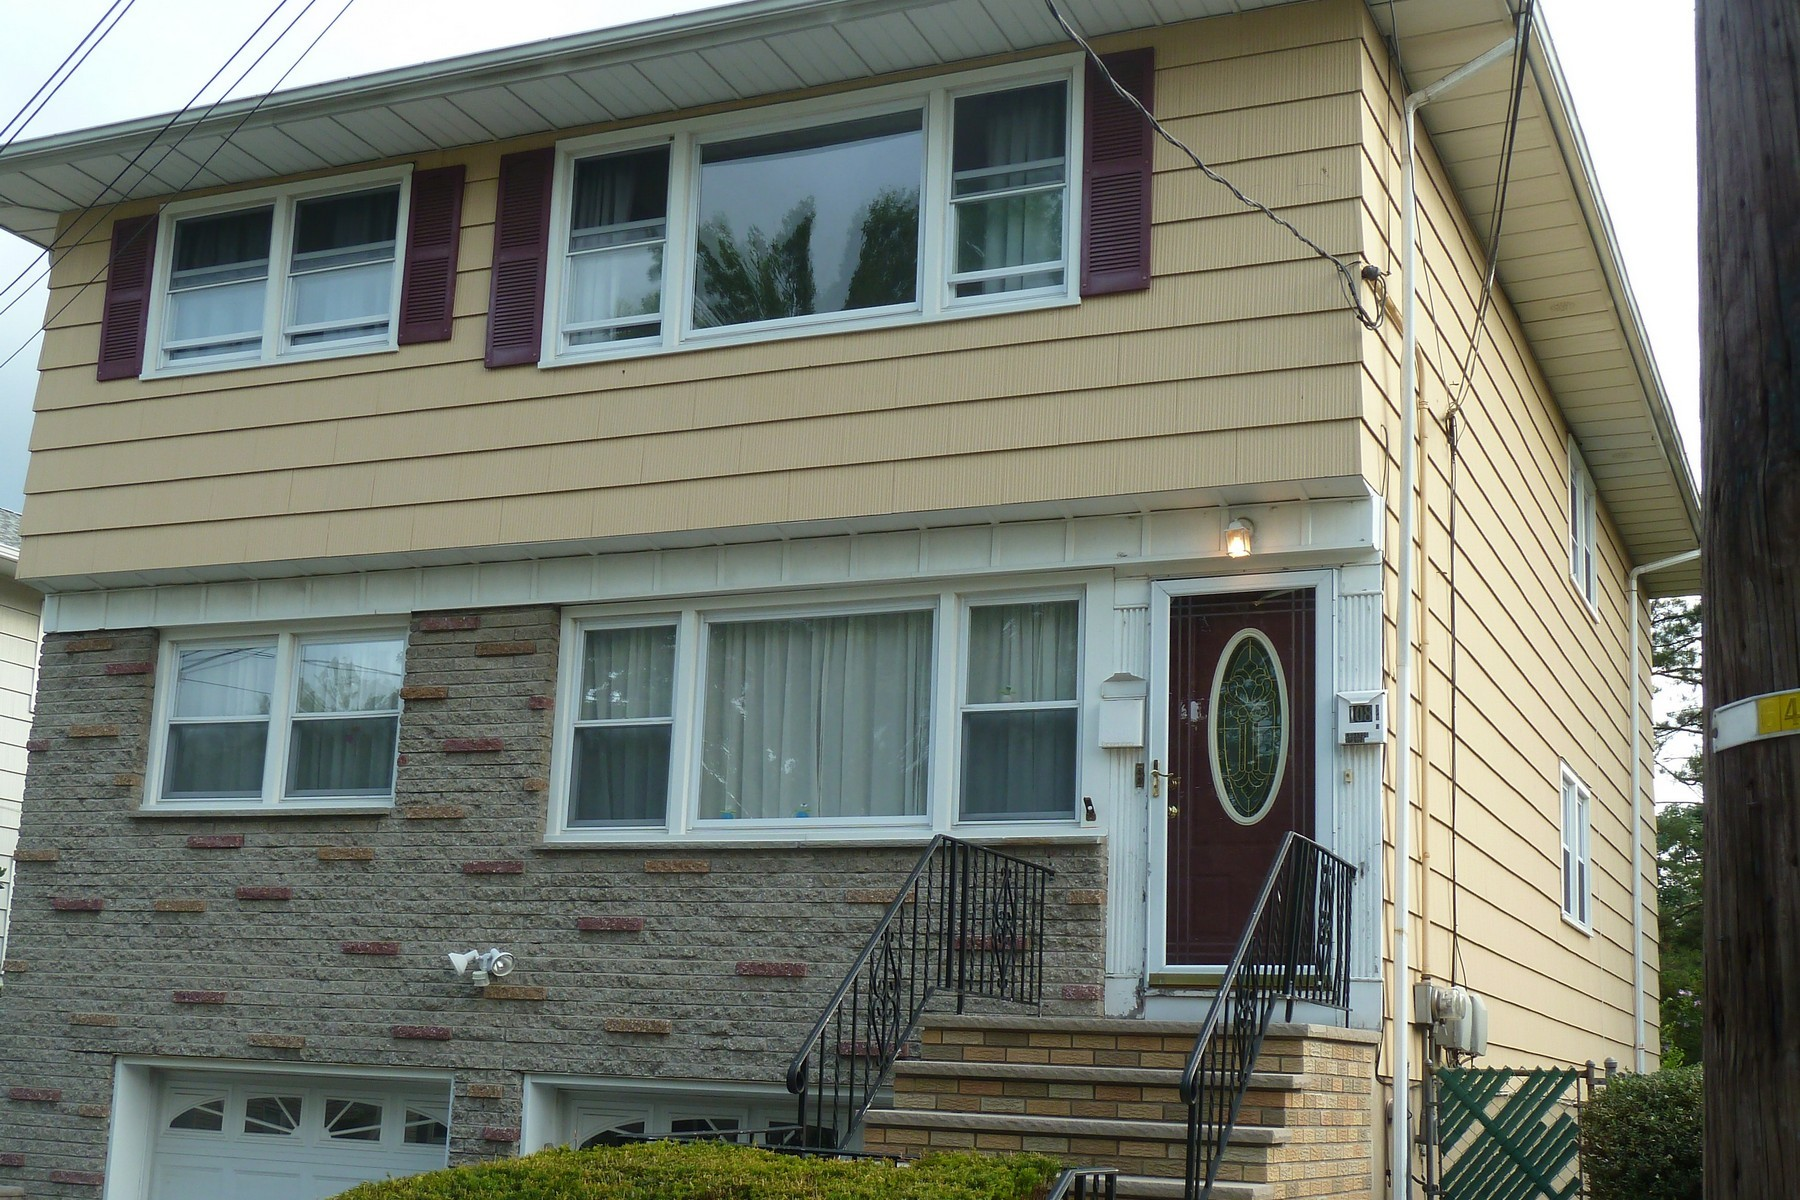 Multi-Family Home for Rent at Sunny Three Bedroom 108 Lakewood Terrace, Unit 2, Bloomfield, New Jersey 07003 United States